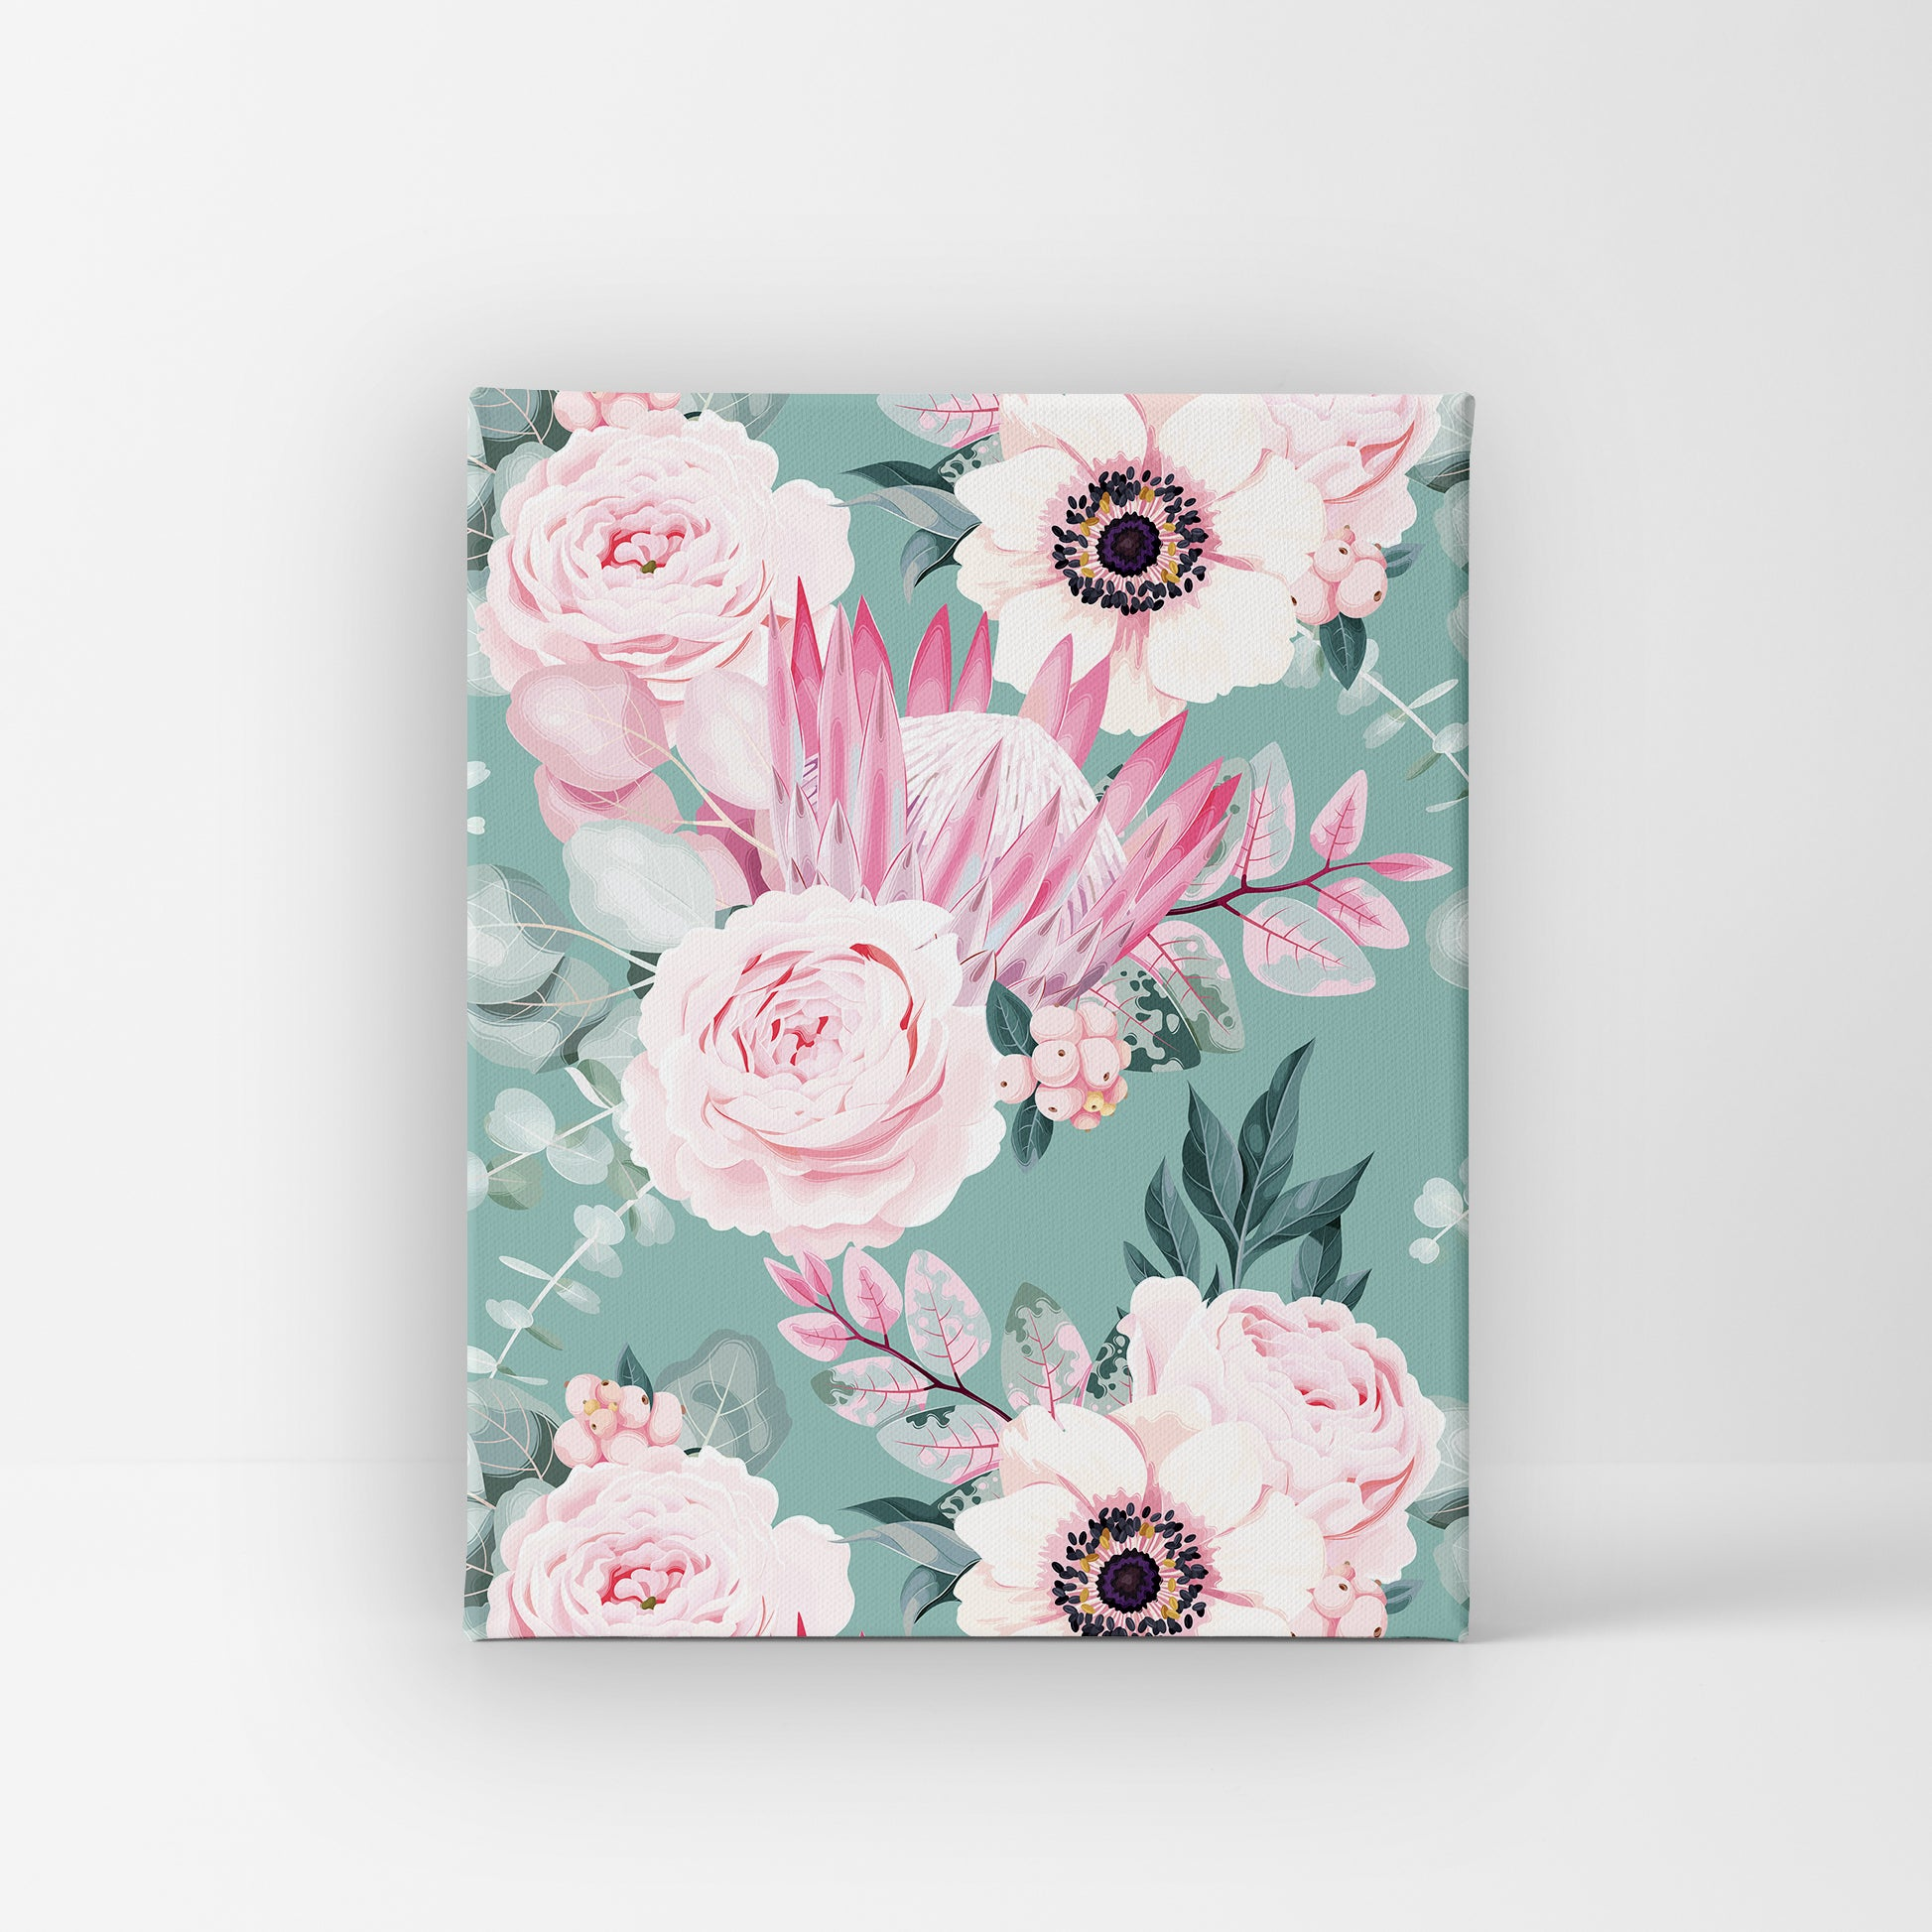 Unique Canvas - Vintage Flower